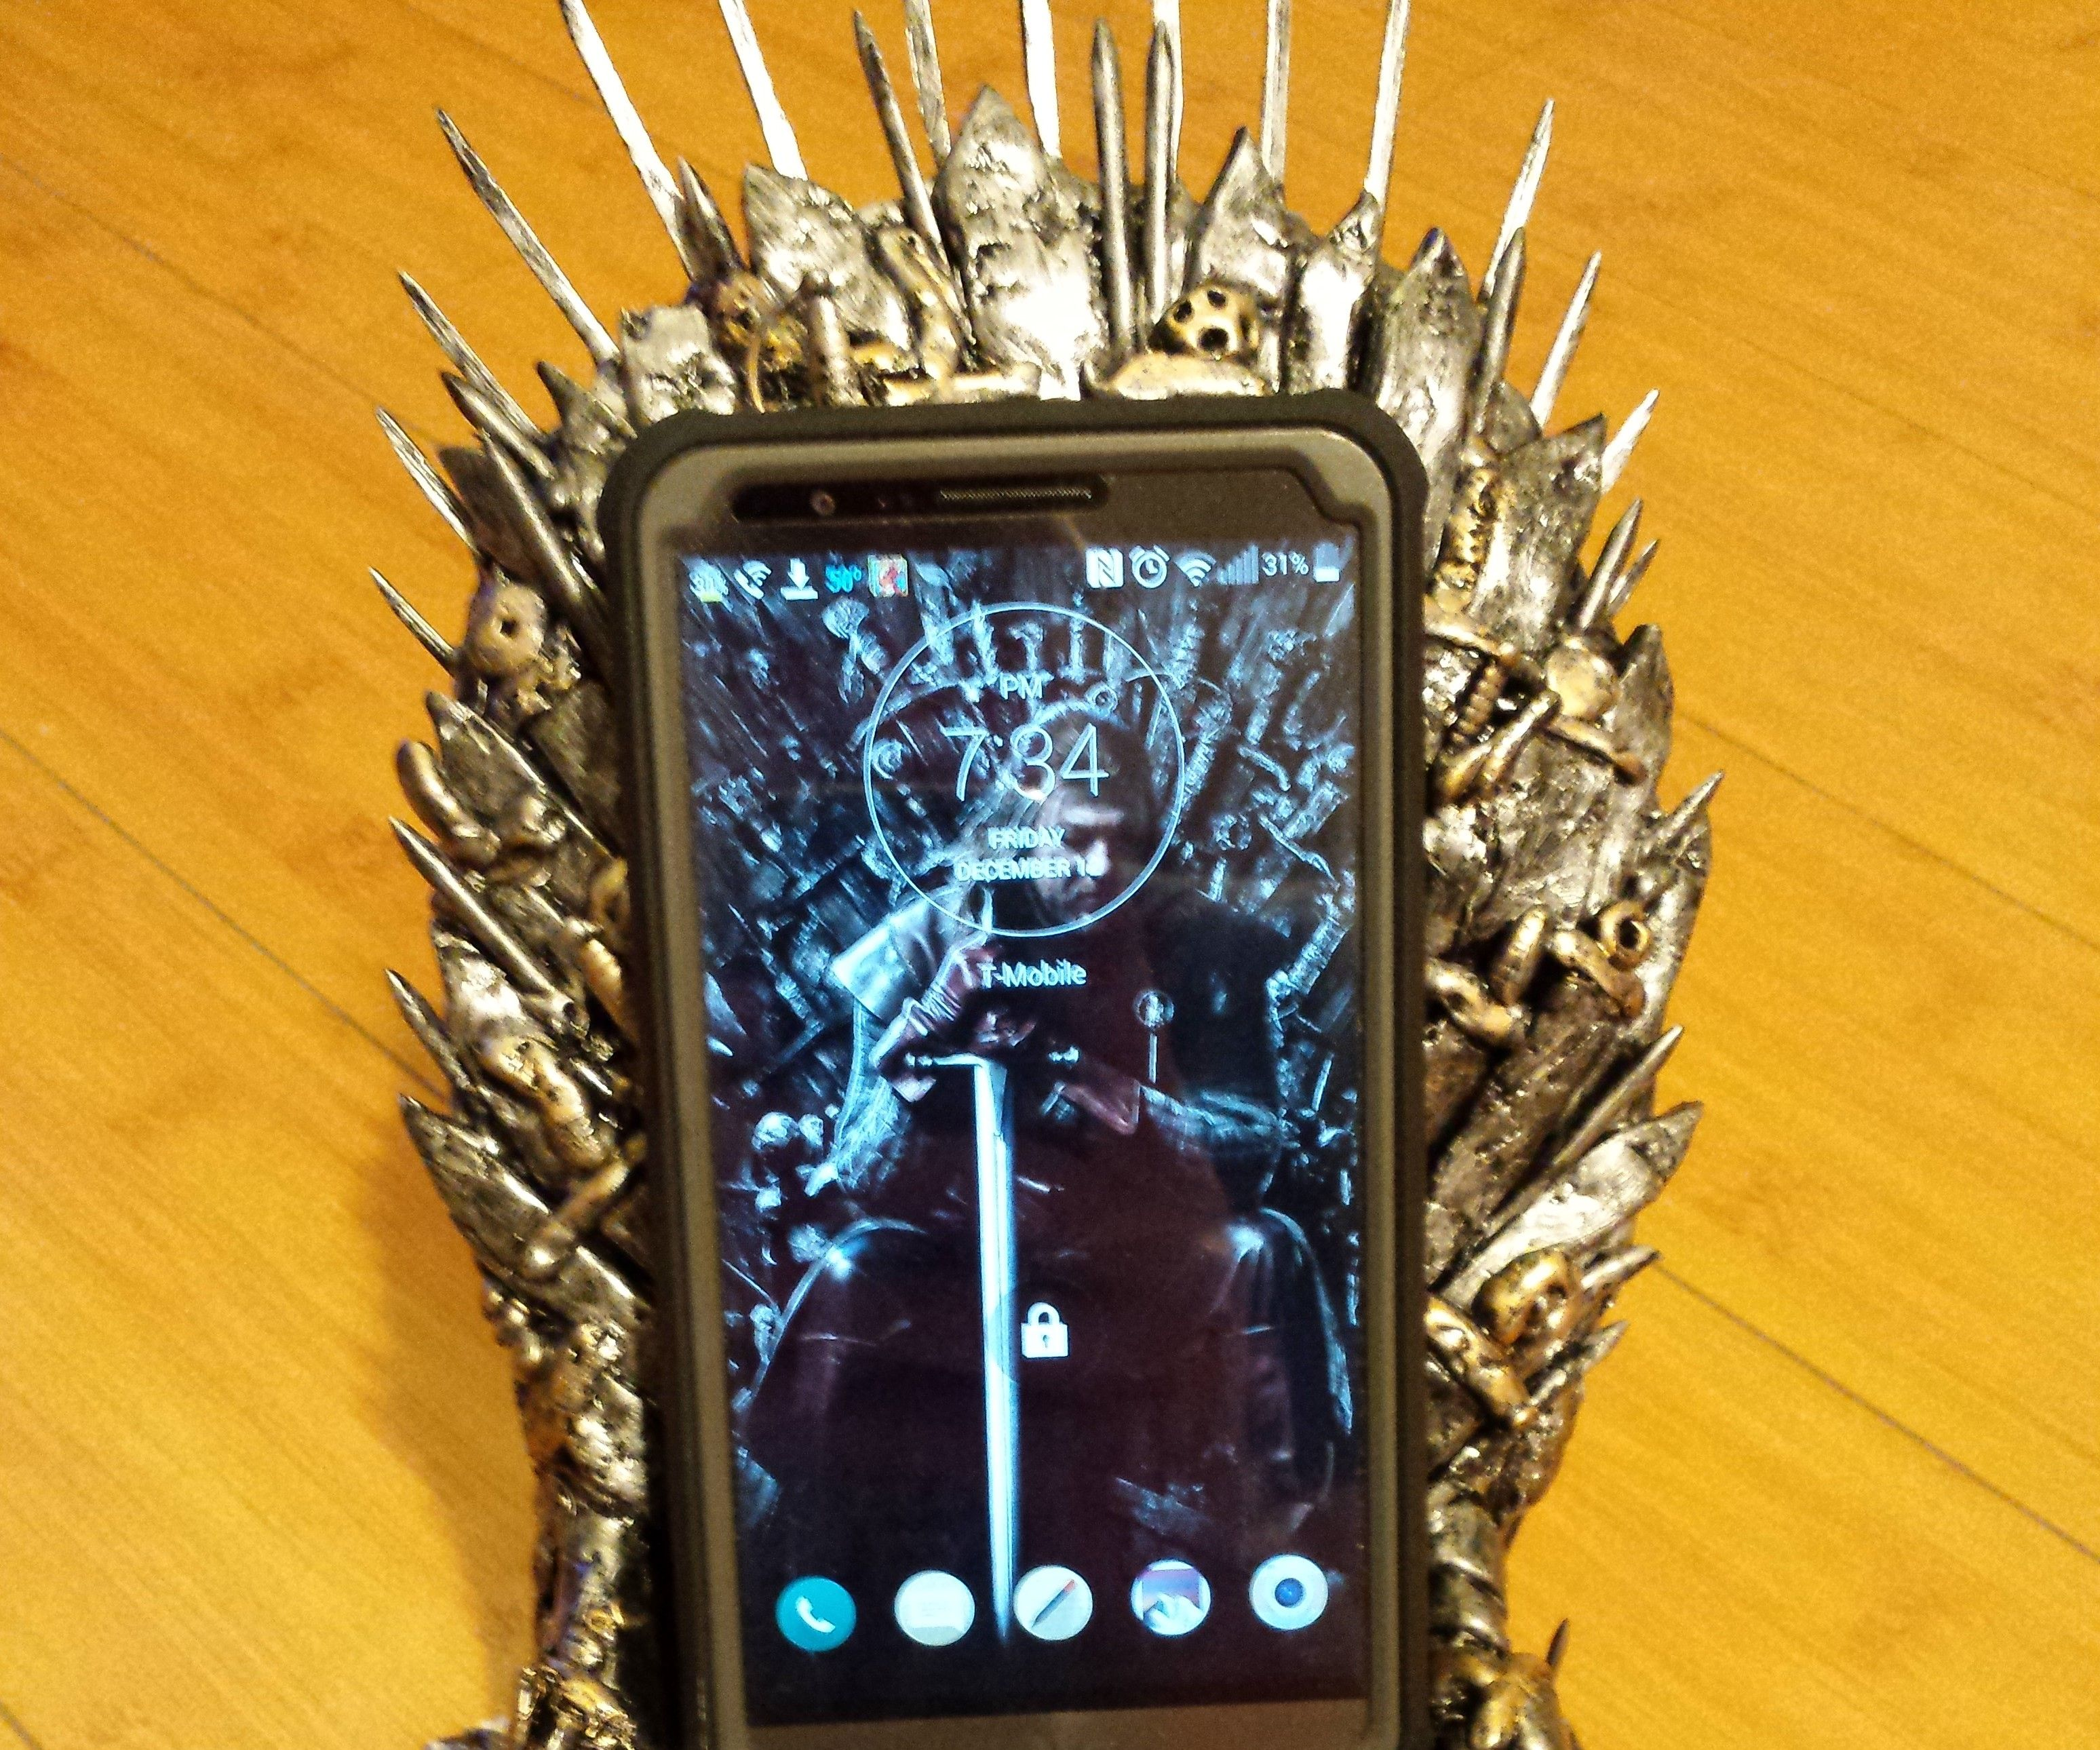 Game of thrones Iron Throne Phone Dock